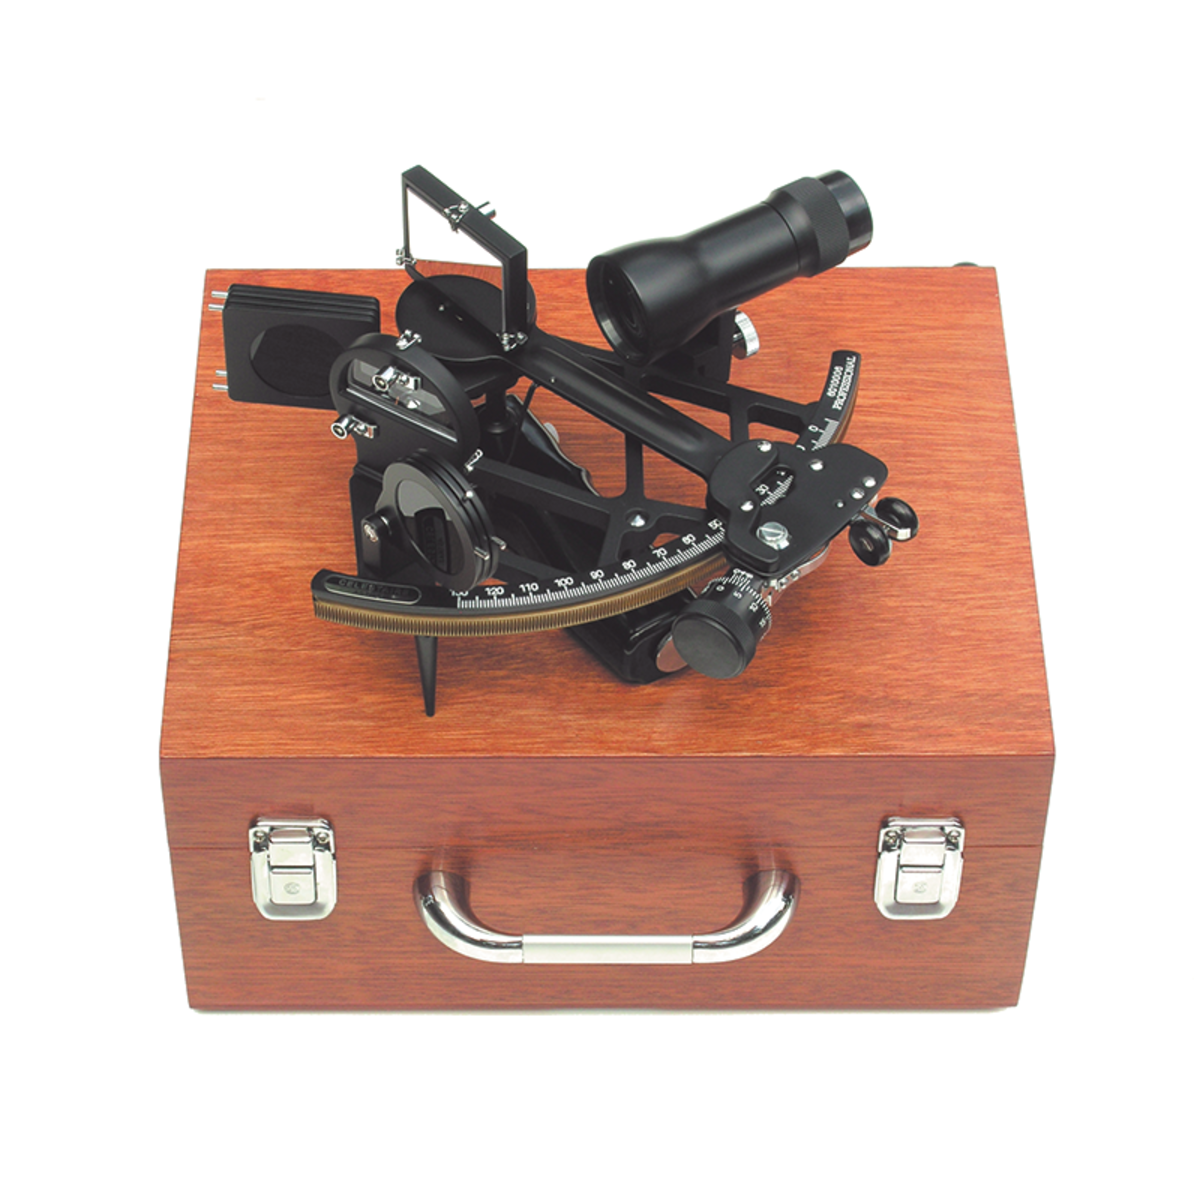 Astra III Professional Sextant, $875